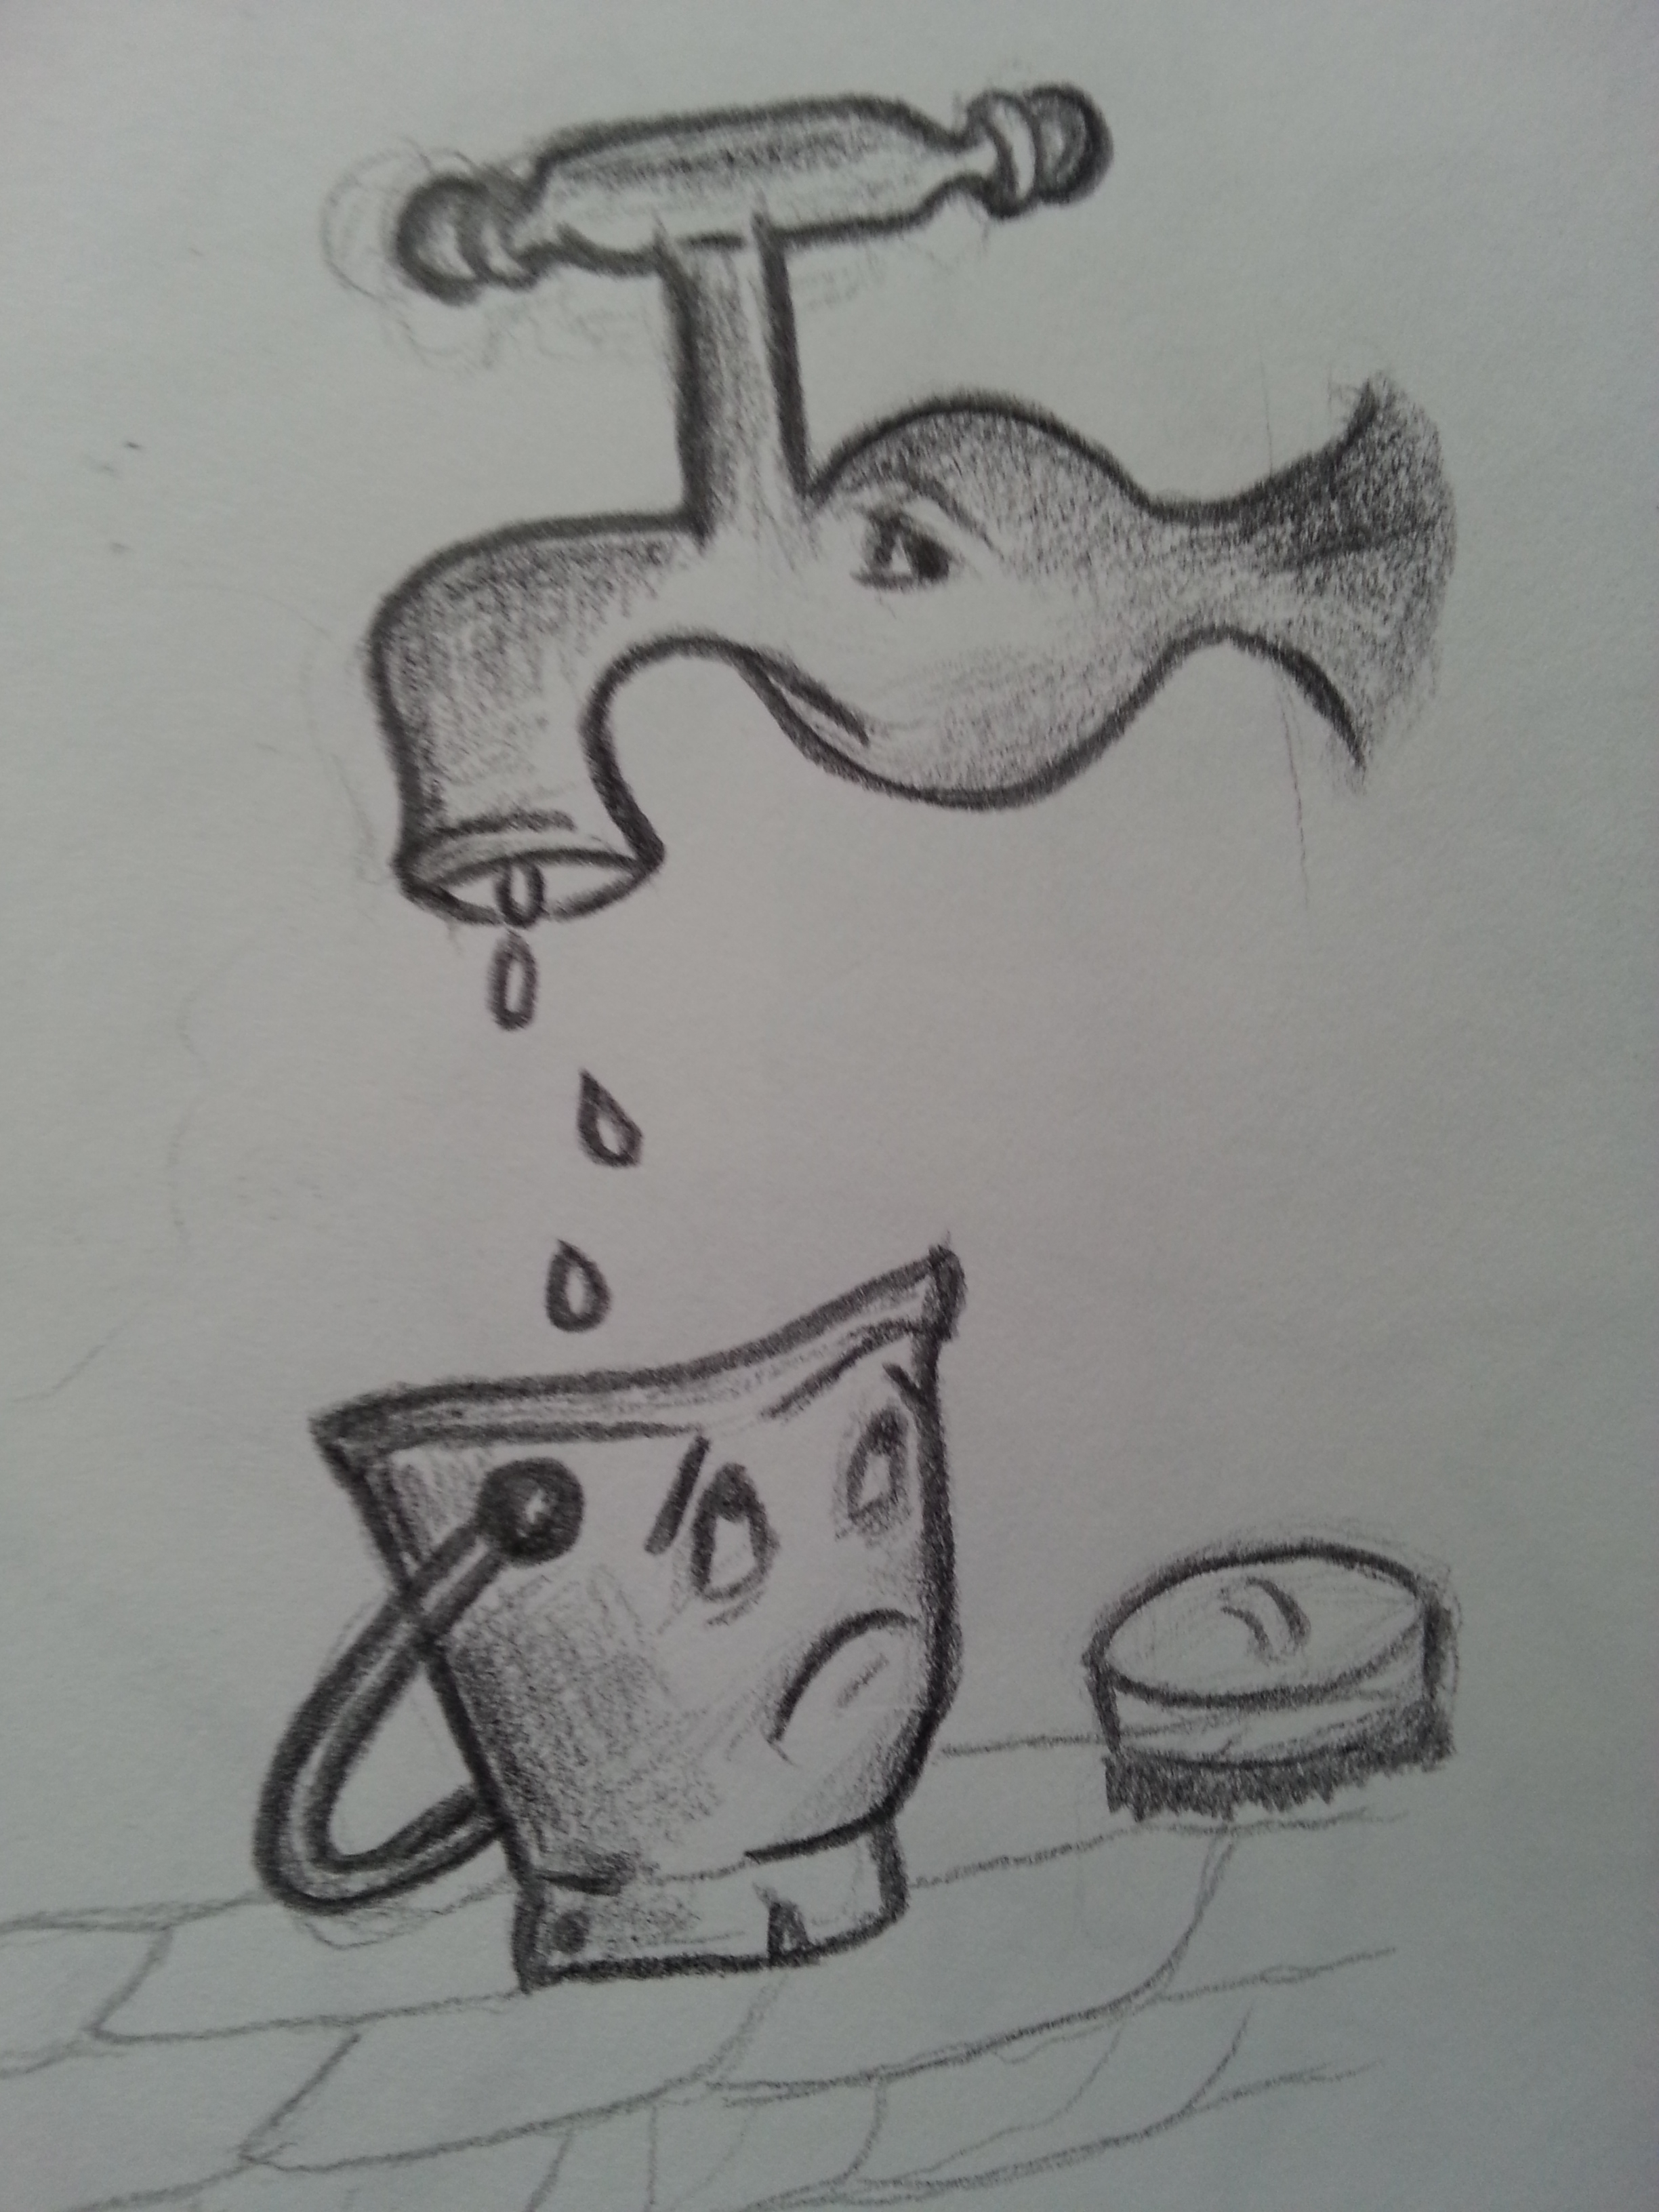 birthday pencil drawing ; pencil-drawings-about-saving-water-a-quick-sketch-of-my-czech-friend-on-his-birthday-wishing